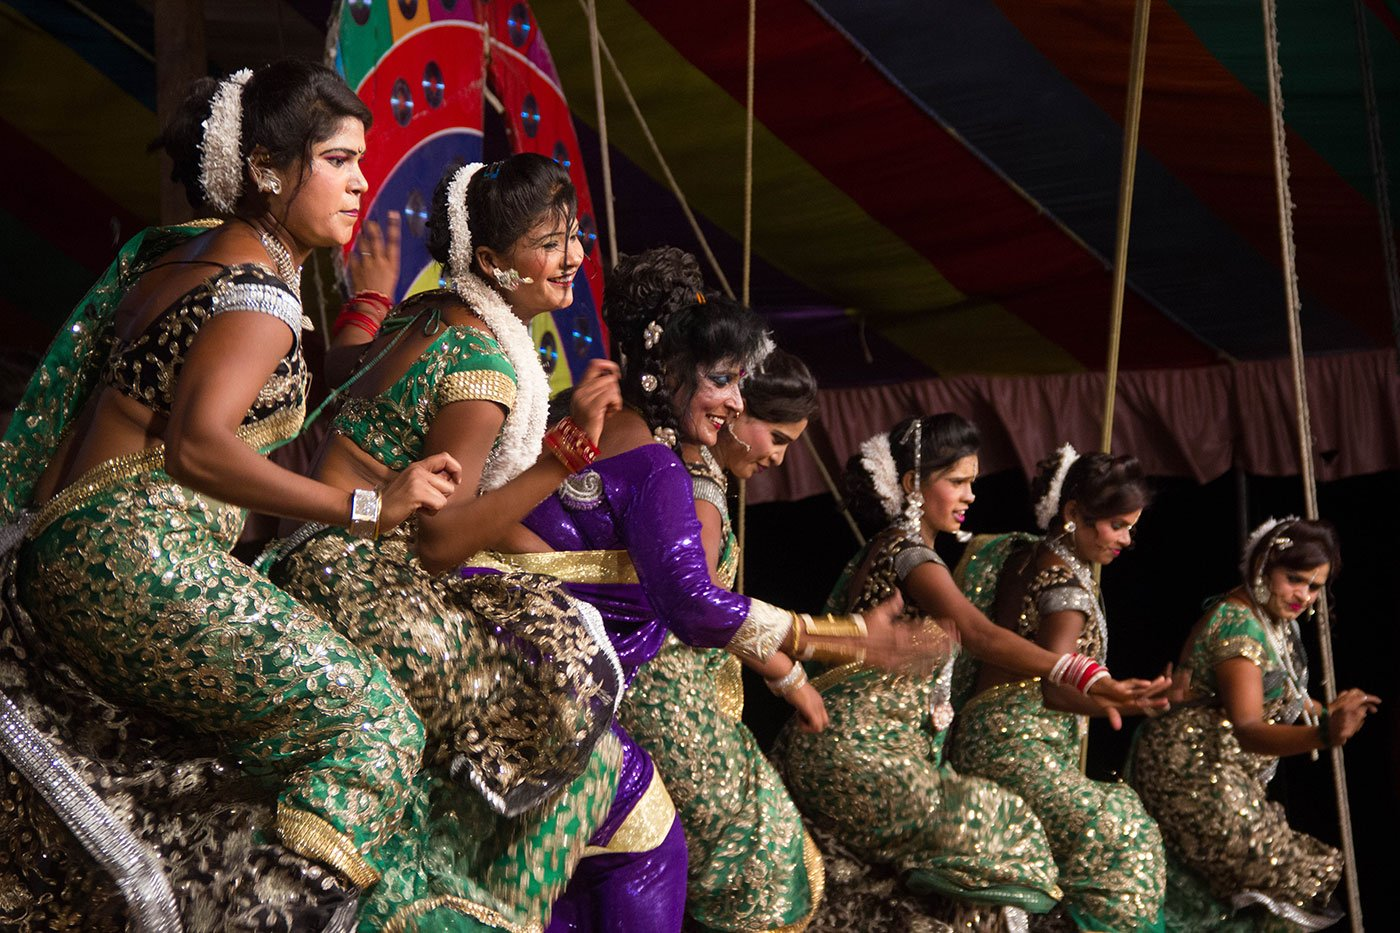 Women in saris dancing on a stage at a tamasha performance